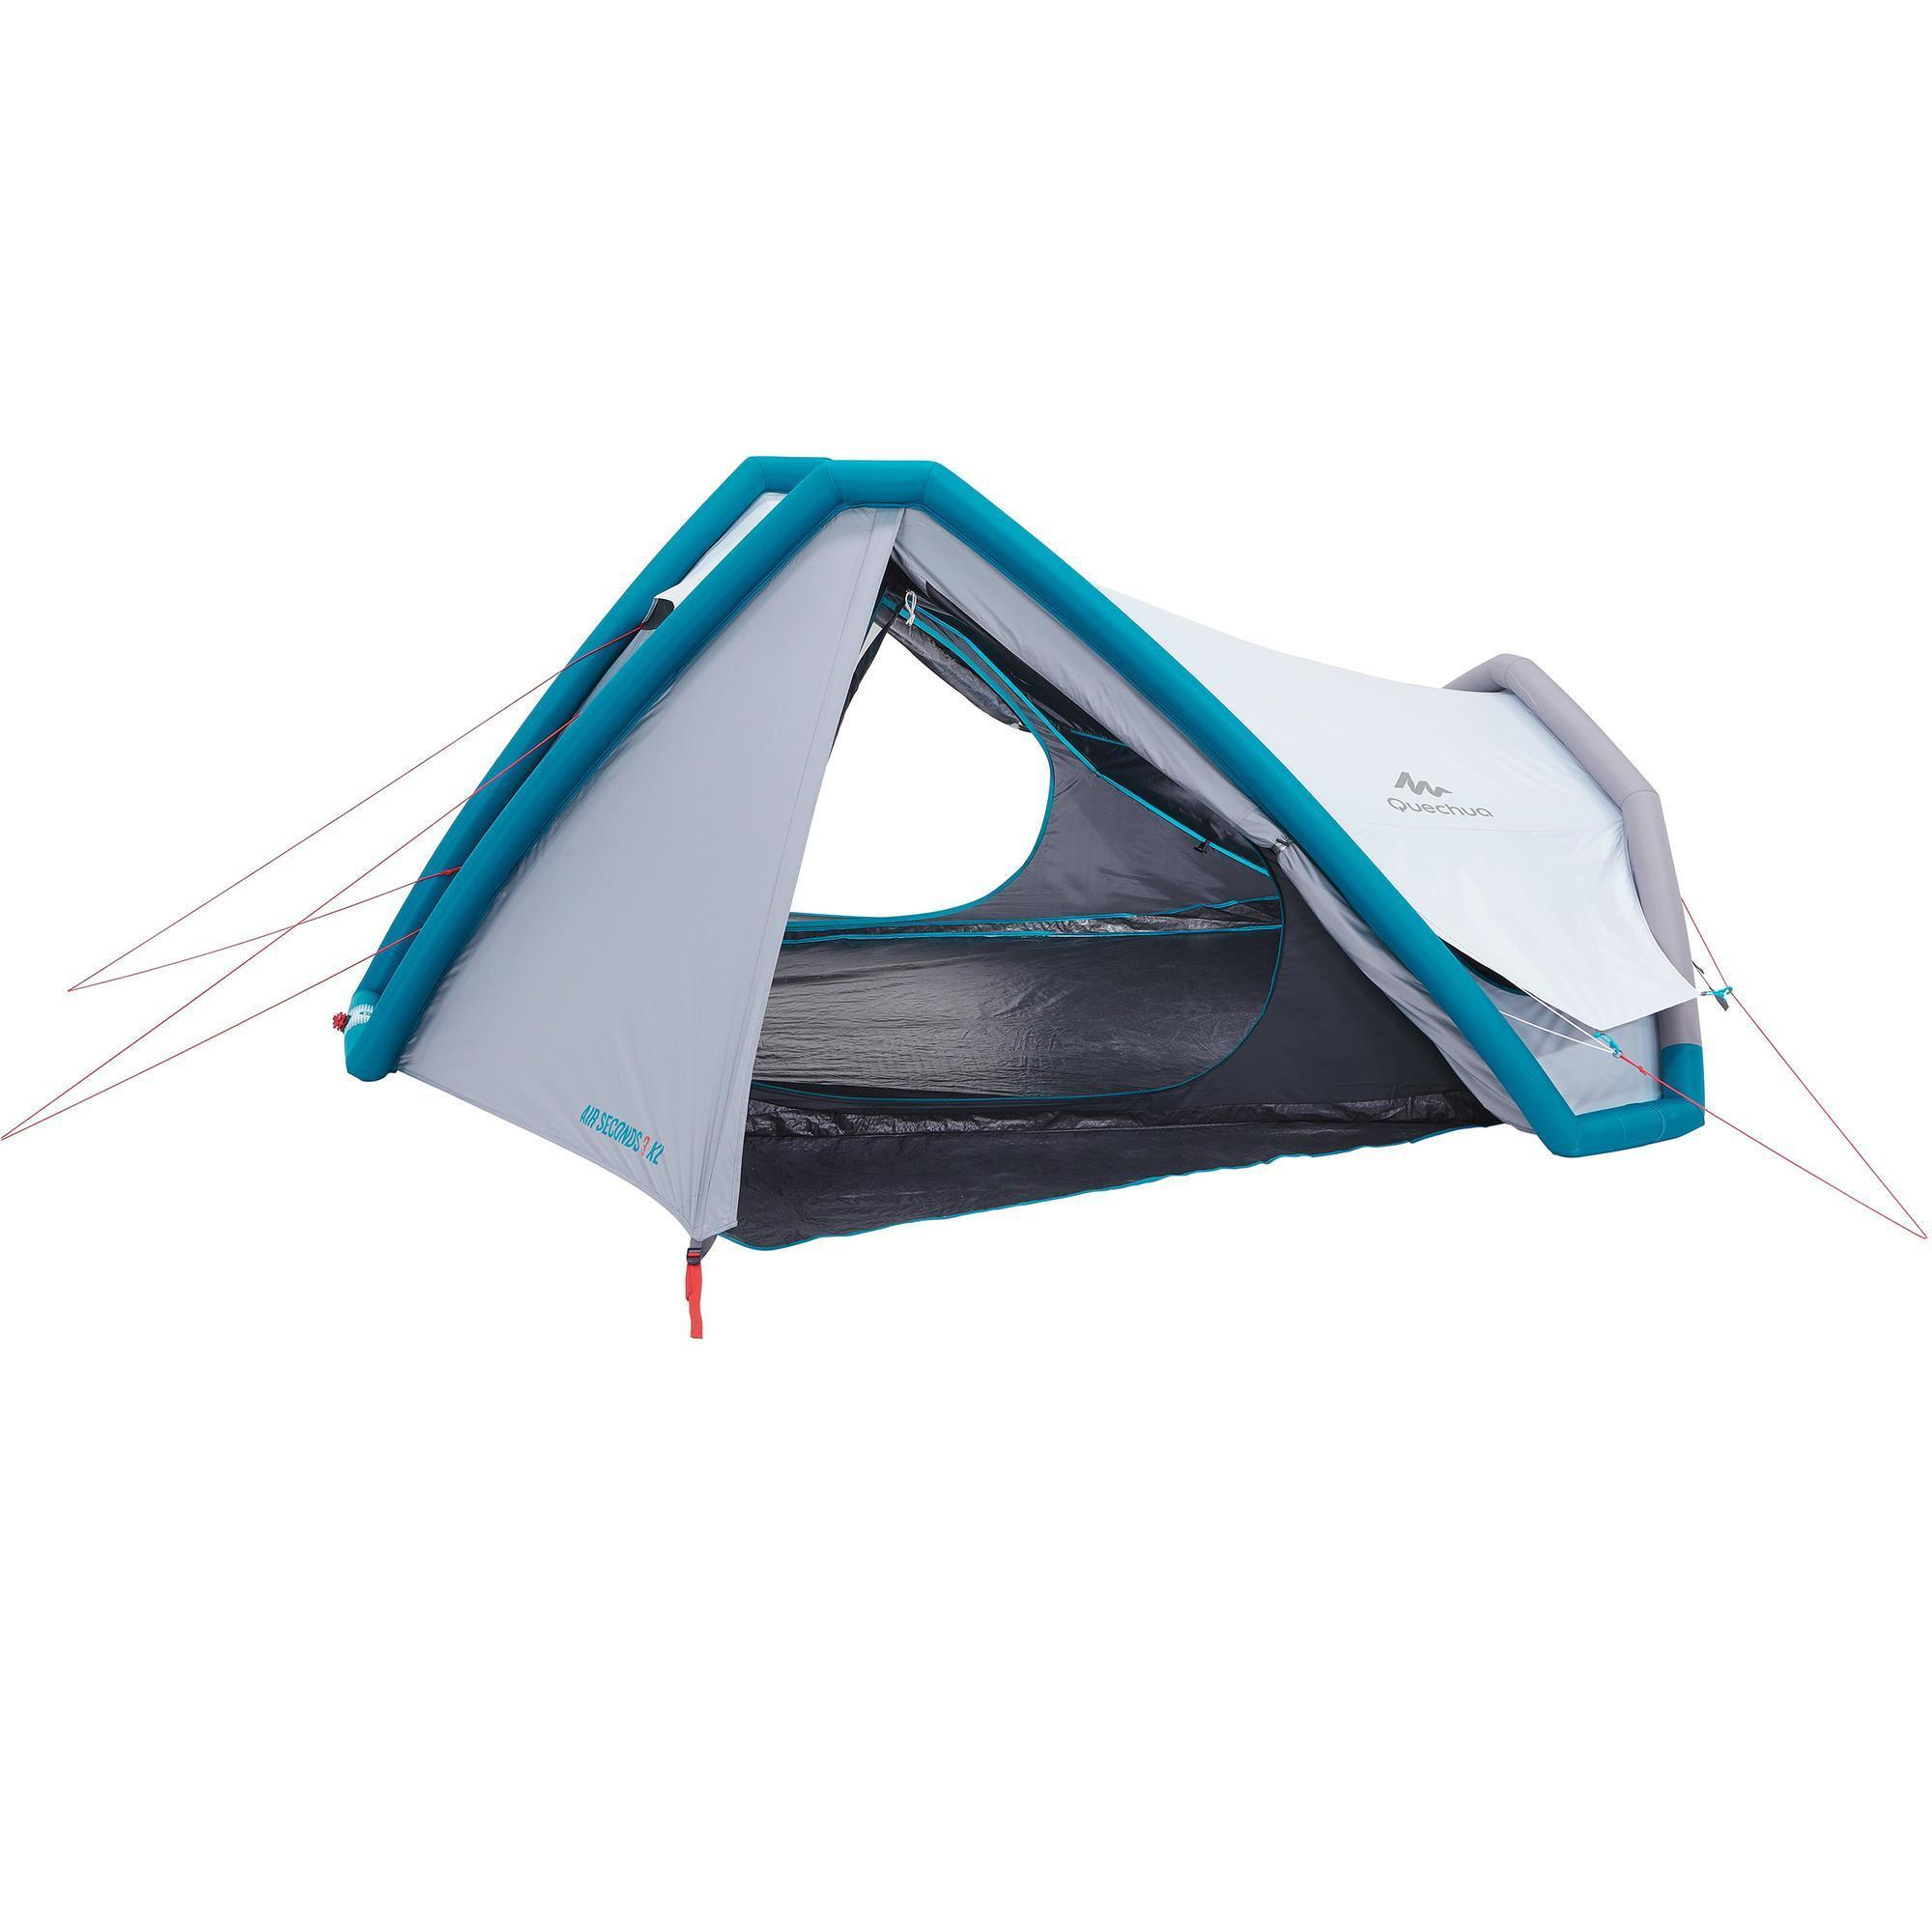 C&ing tents for 1 to 3 people  sc 1 st  Quechua & Tents | Quechua